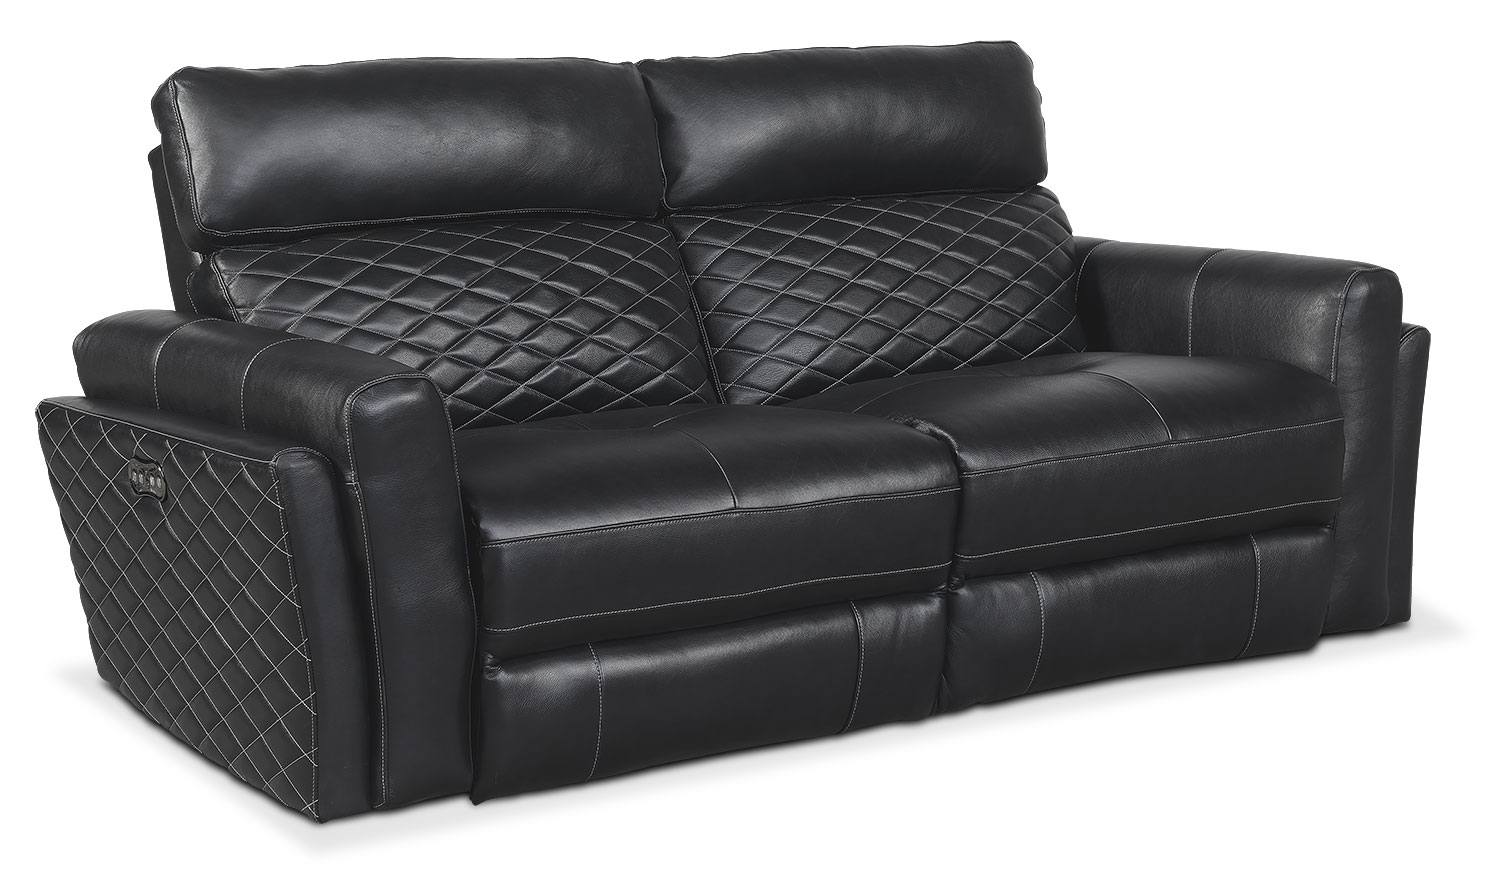 Catalina 2-Piece Power Reclining Sofa - Black